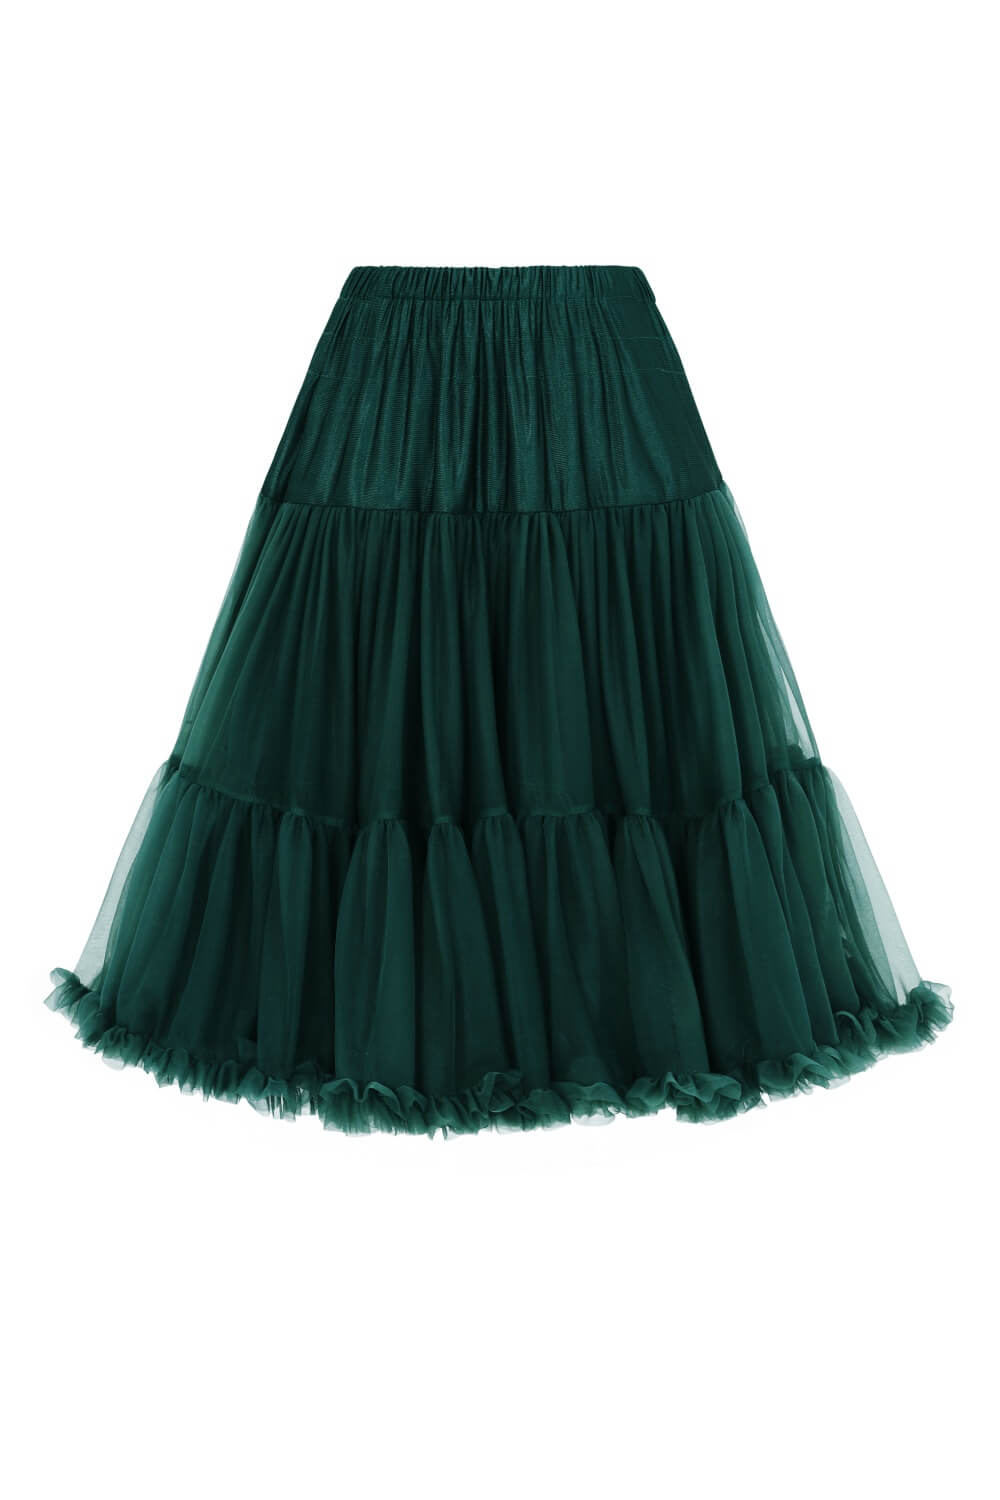 Banned Bottle Green Lifeforms Petticoat